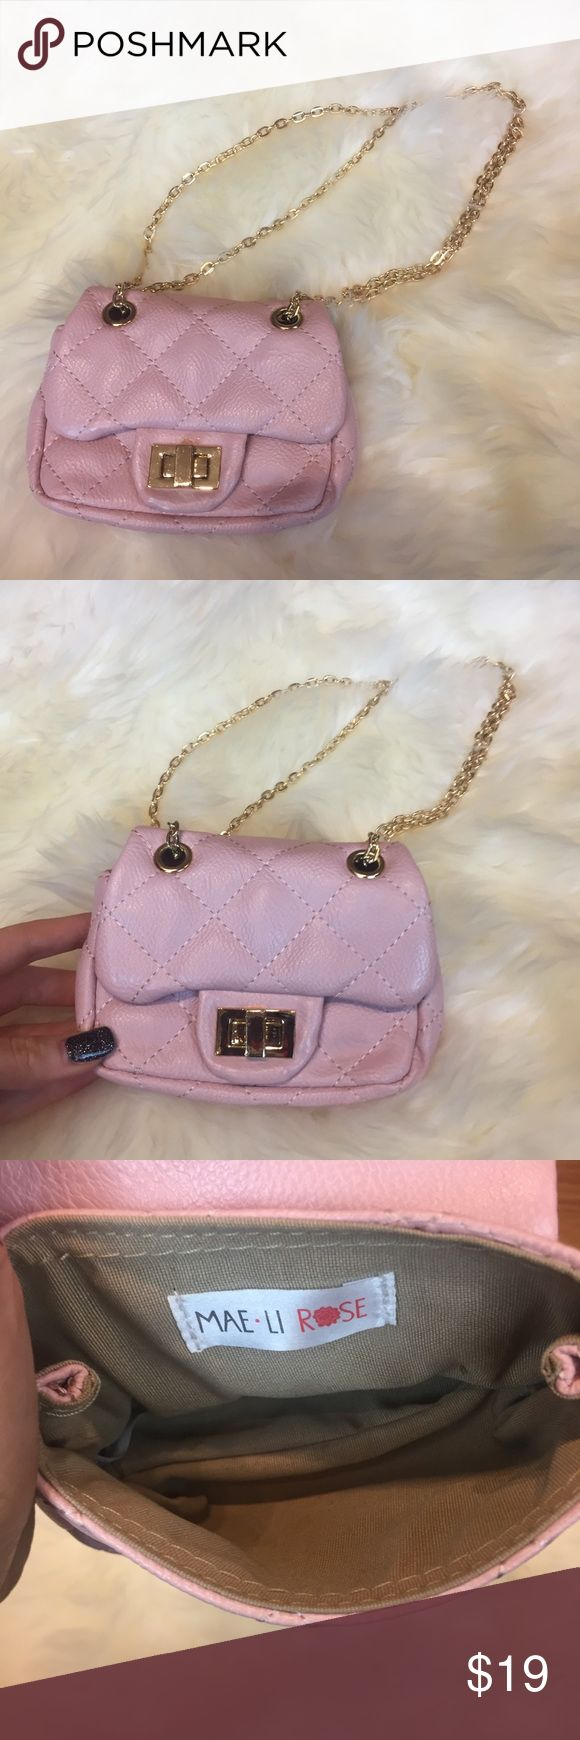 Girls Small Quilted Blush Pink Purse MAE Li Rose🌹 This adorable mini purse is like new!! Has adorable gold chain straps for some extra sass!! Perfect for your little one carrying some lipgloss or nail polish!! MAE LI ROSE Bags Mini Bags